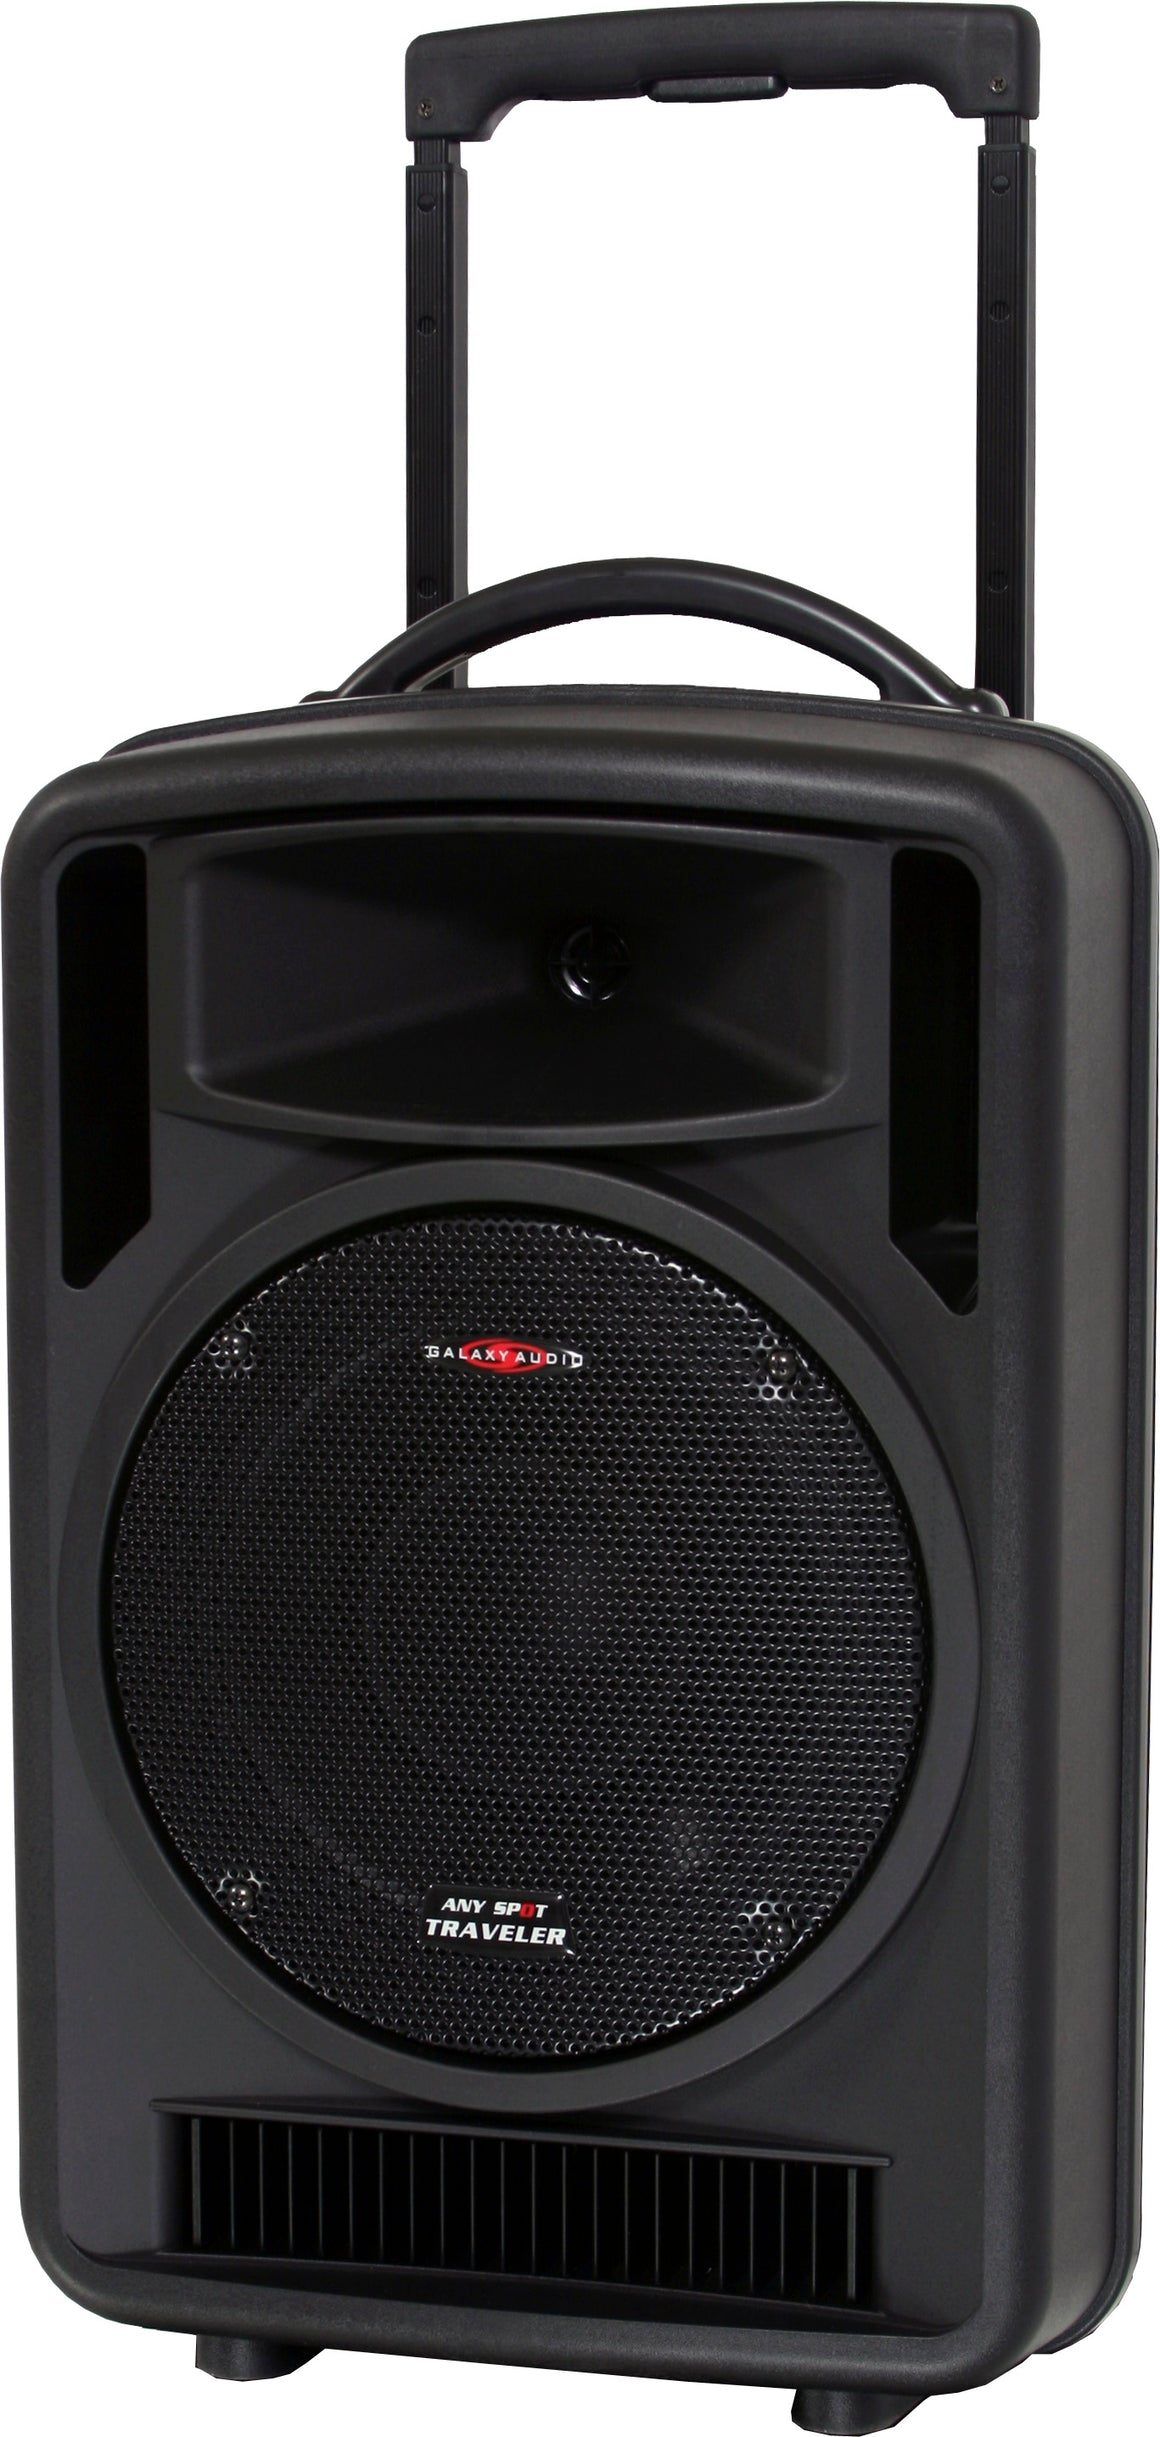 Galaxy Audio Traveler Portable PA System - TV10